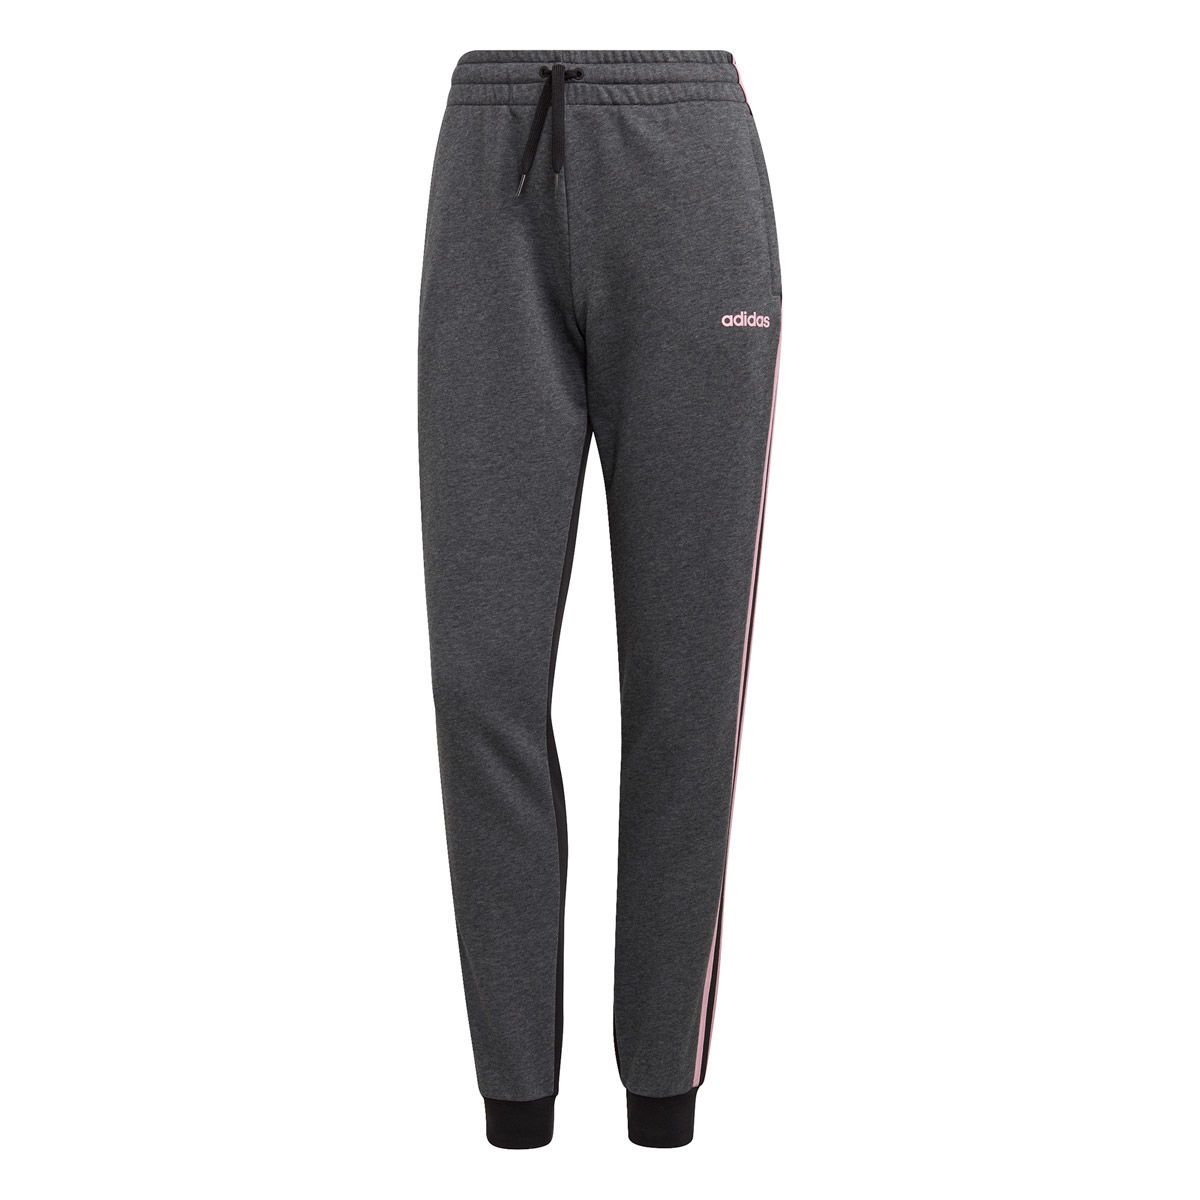 adidas Essentials Cotton-Blend Midrise Womens Jogger